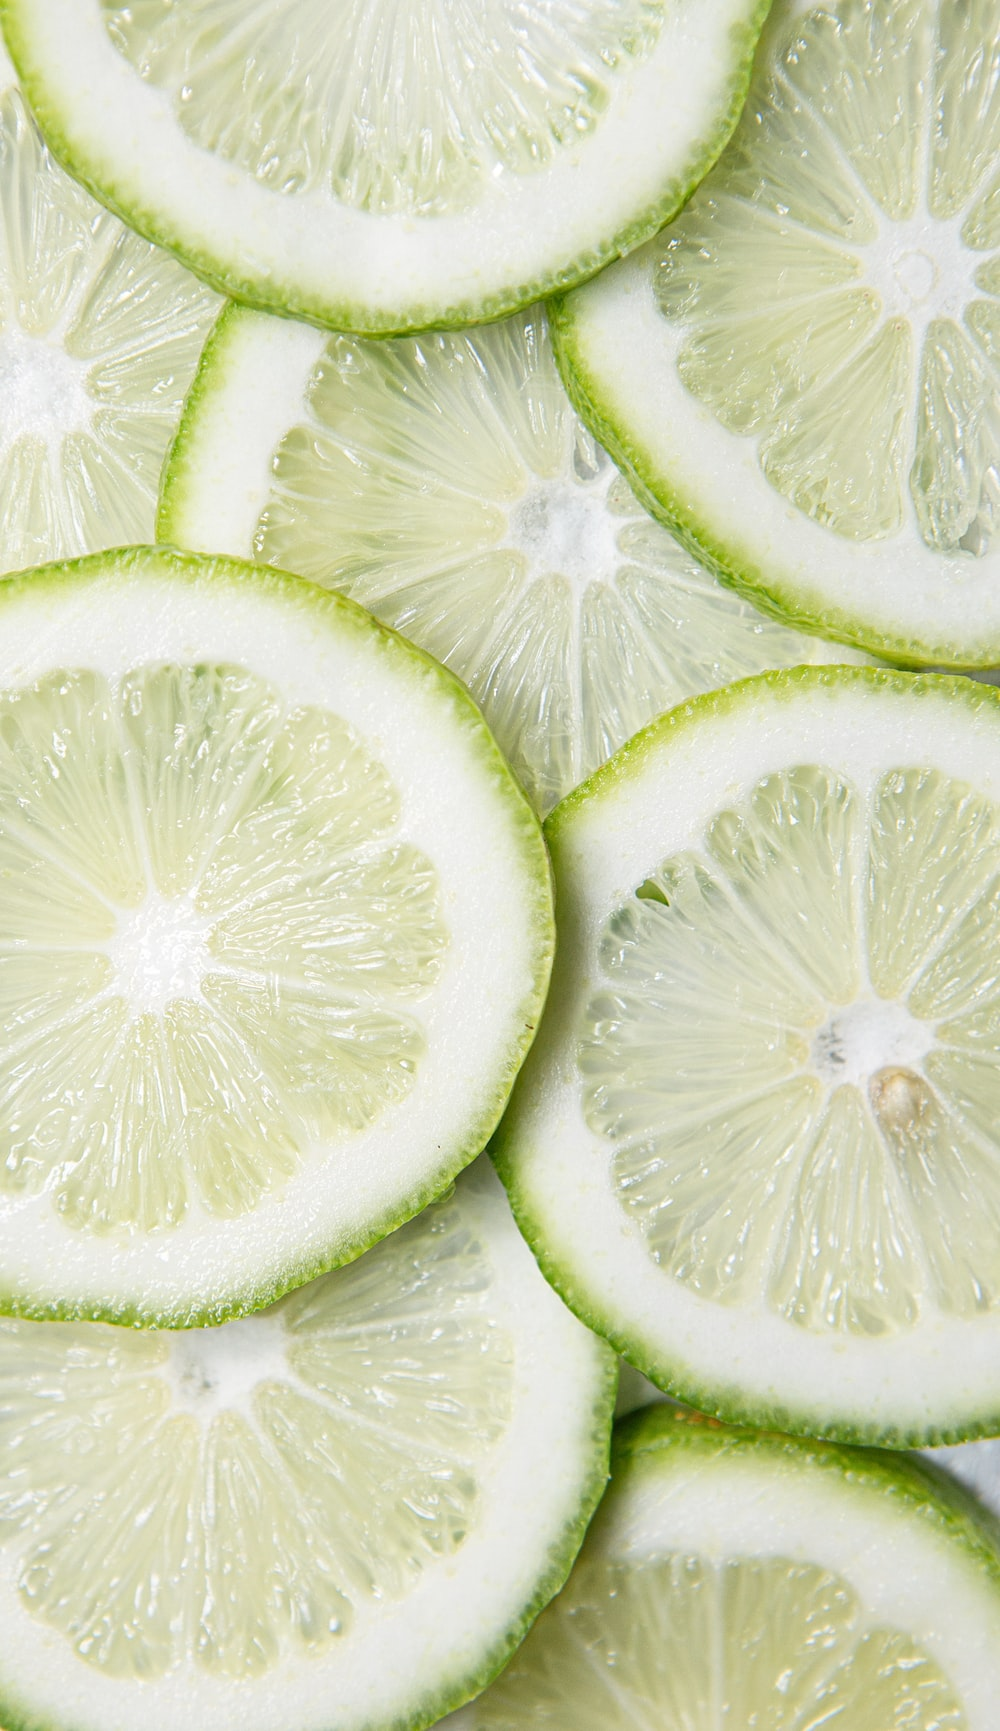 sliced green lime on brown wooden table